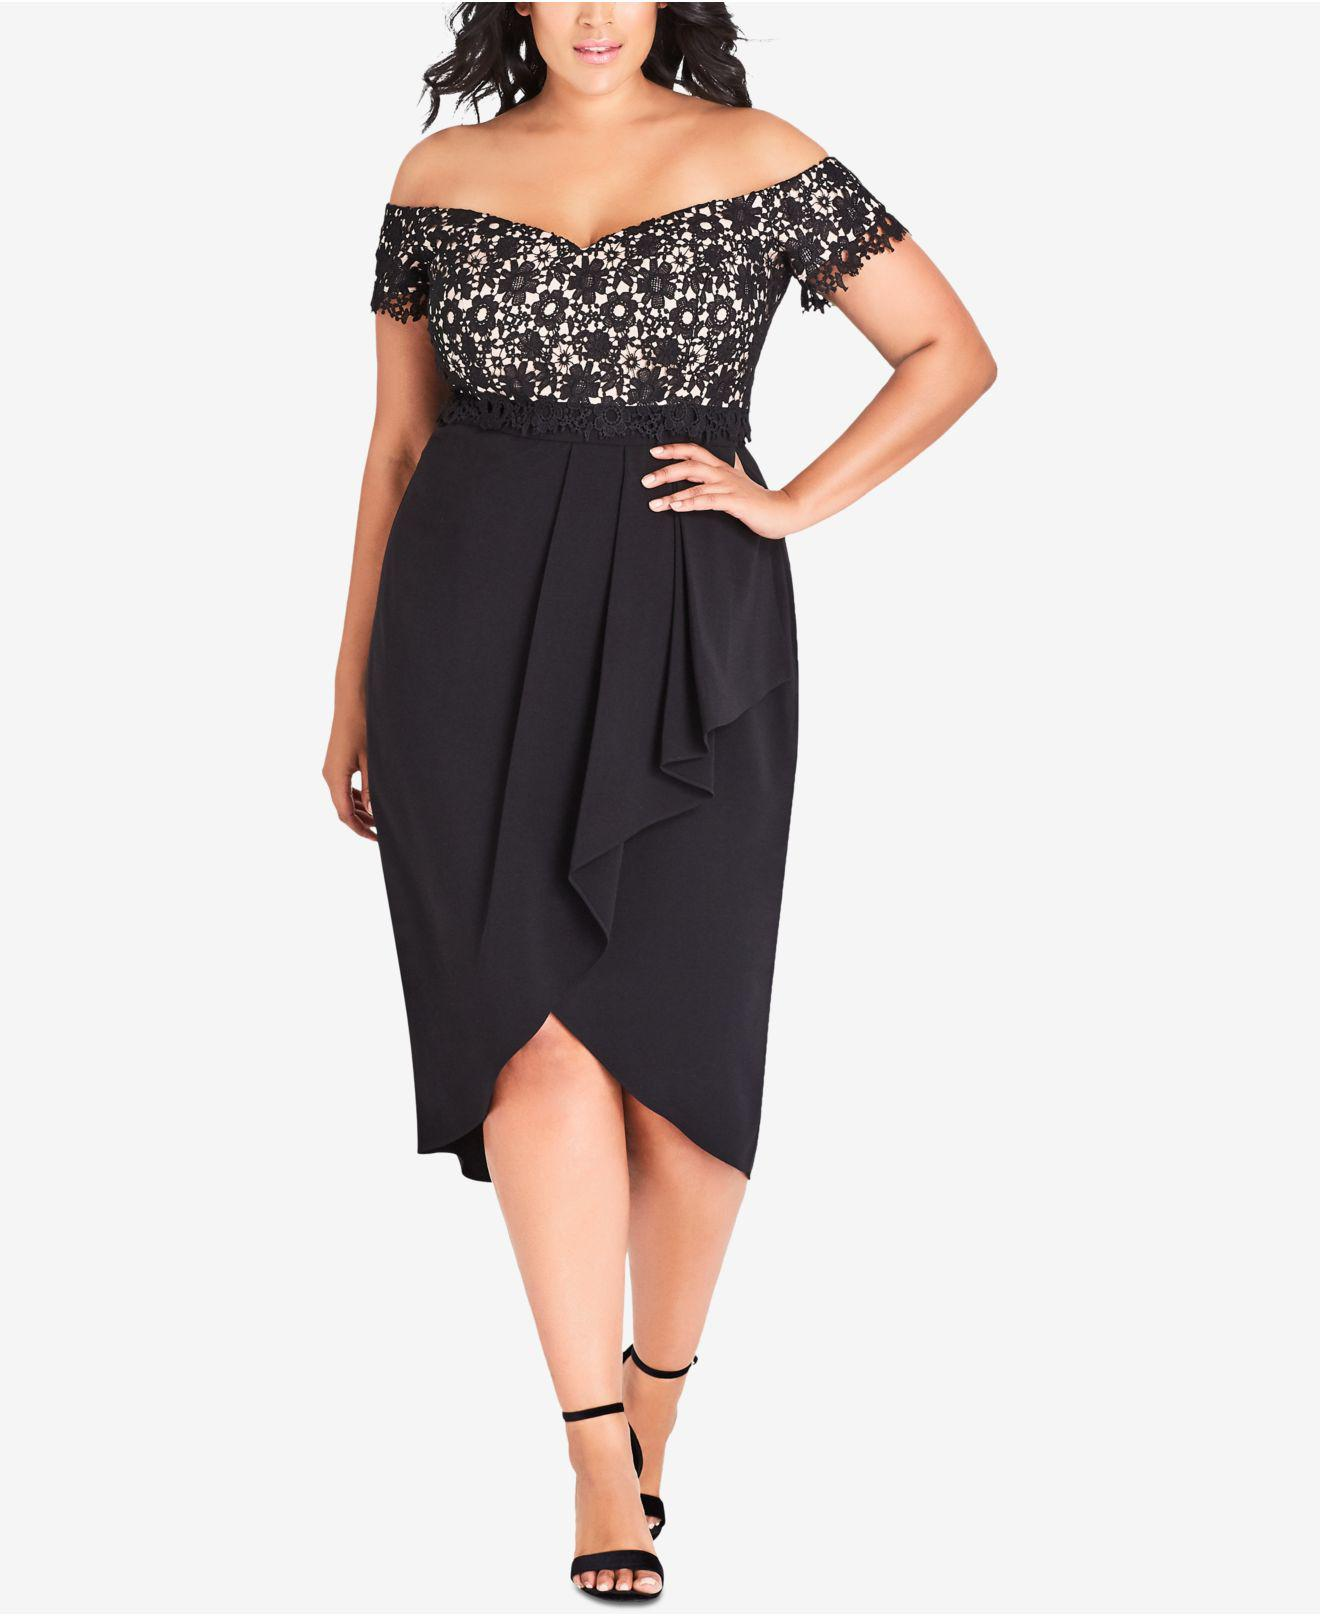 6488c769b87 City Chic. Women s Black Trendy Plus Size Lace Glamour Off-the-shoulder  Dress.  149 From Macy s